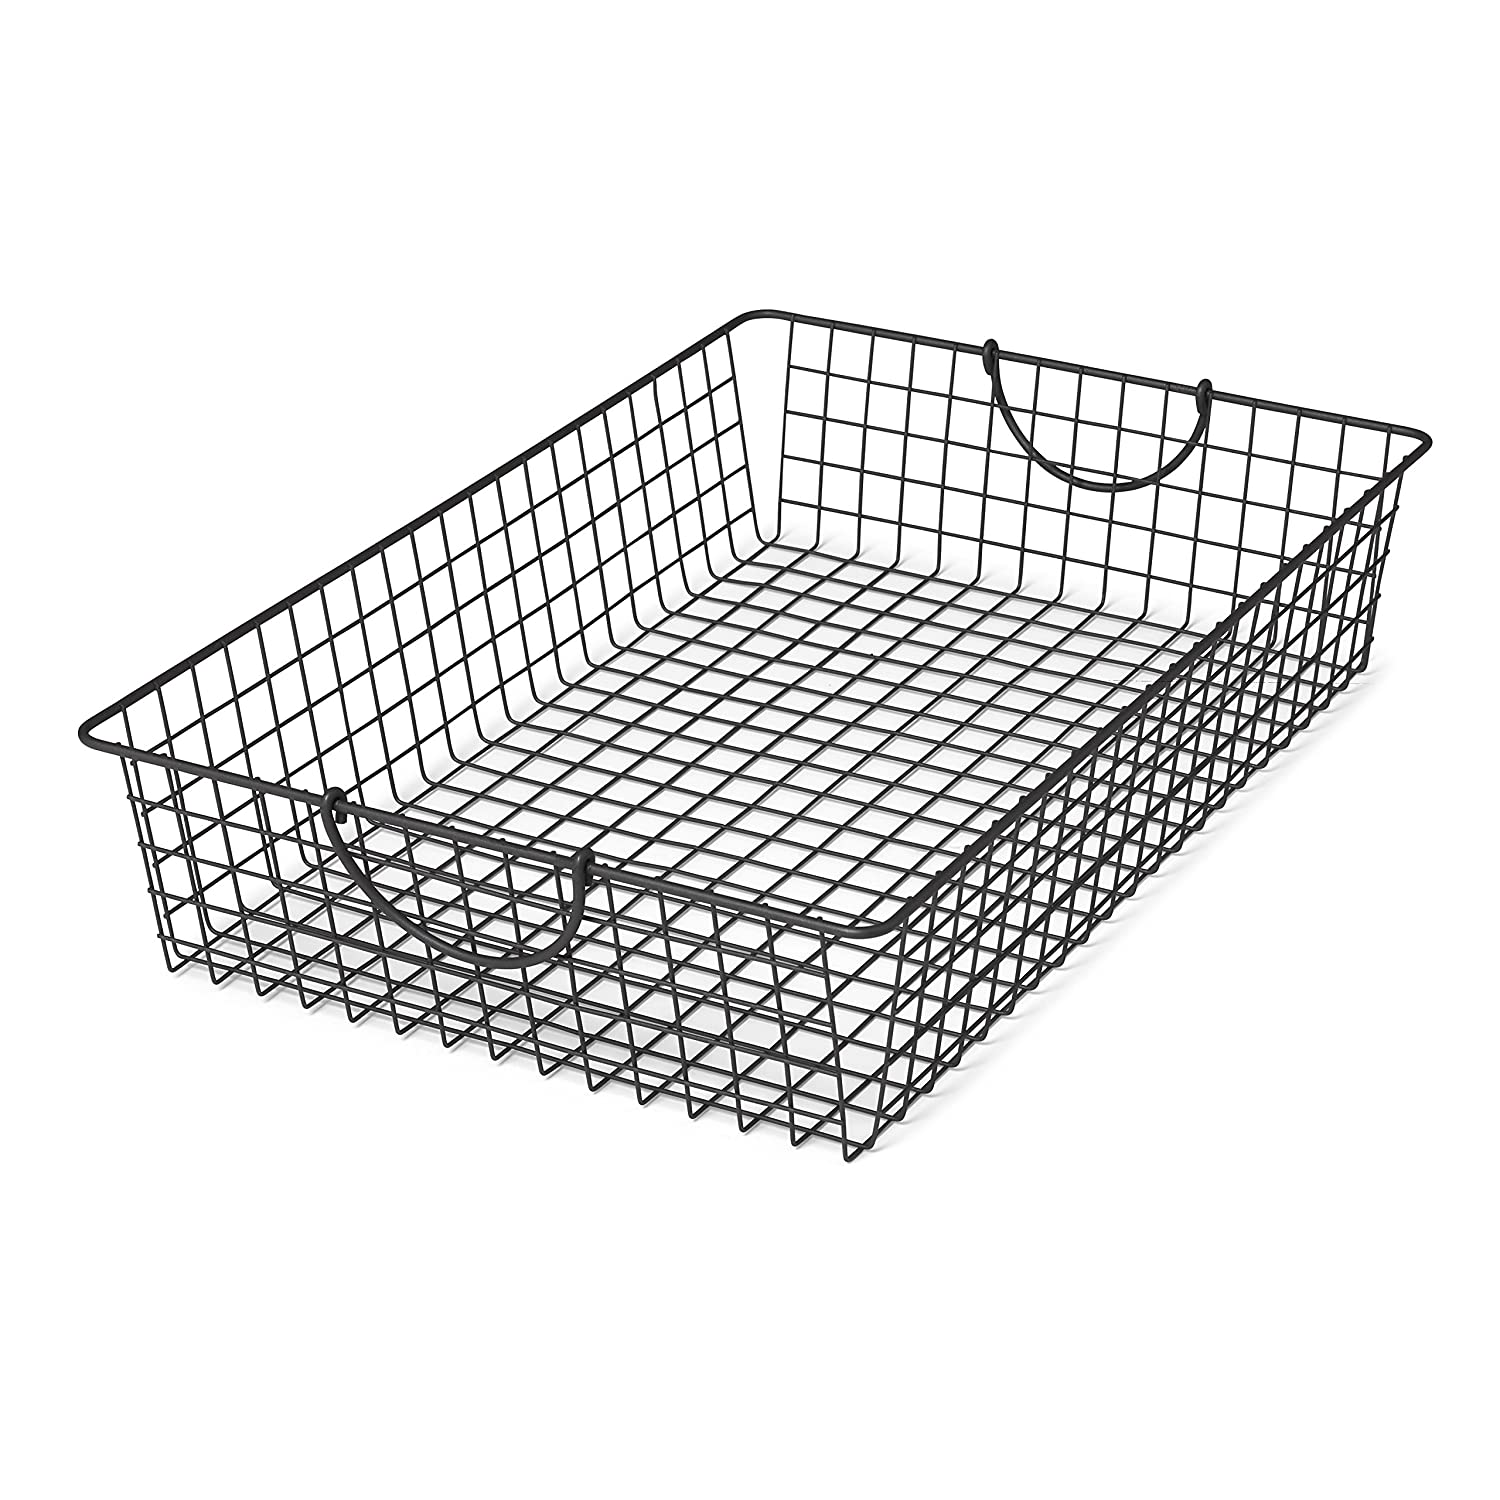 Spectrum Diversified Stowaway Basket, Under Bed Storage, Large, Industrial Gray